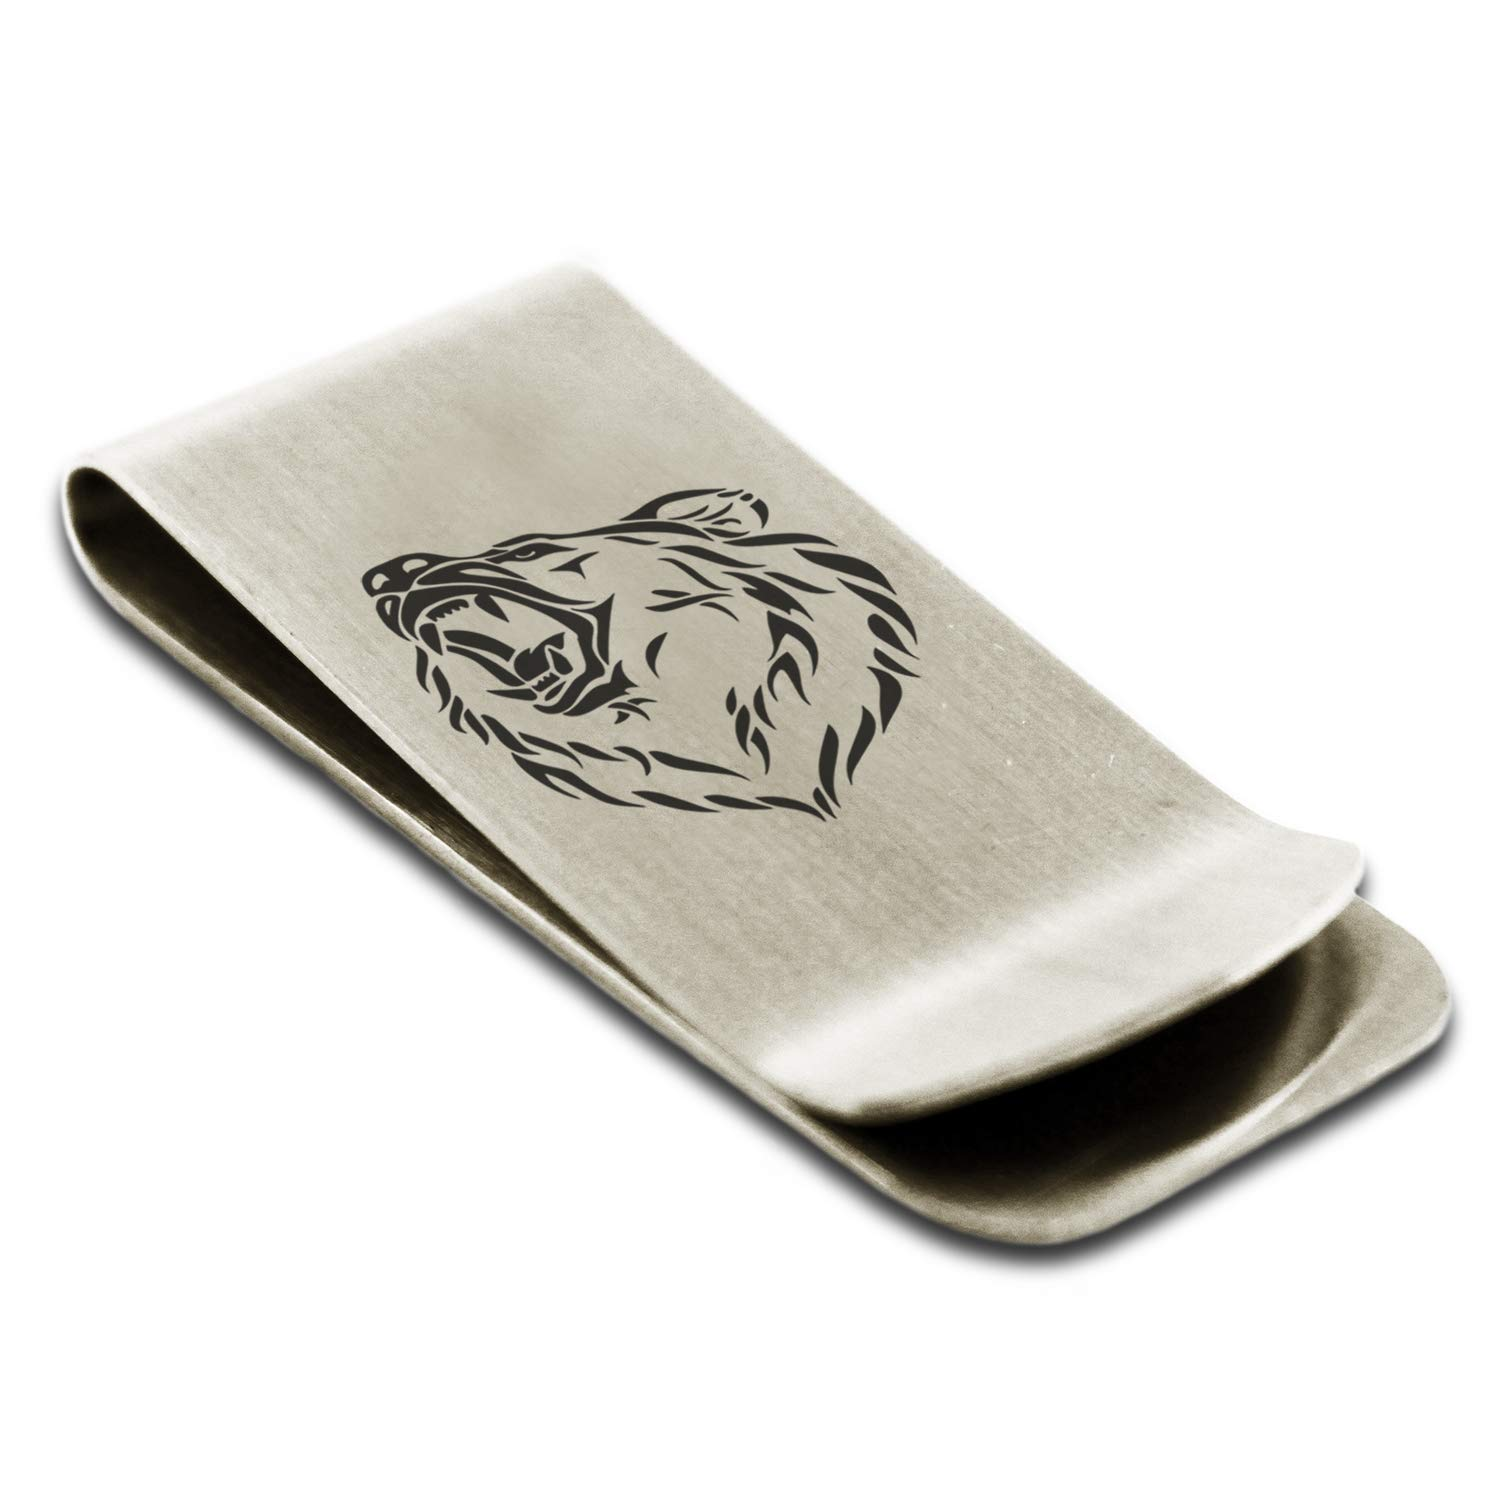 Stainless Steel Bear Money Clip Credit Card Holder